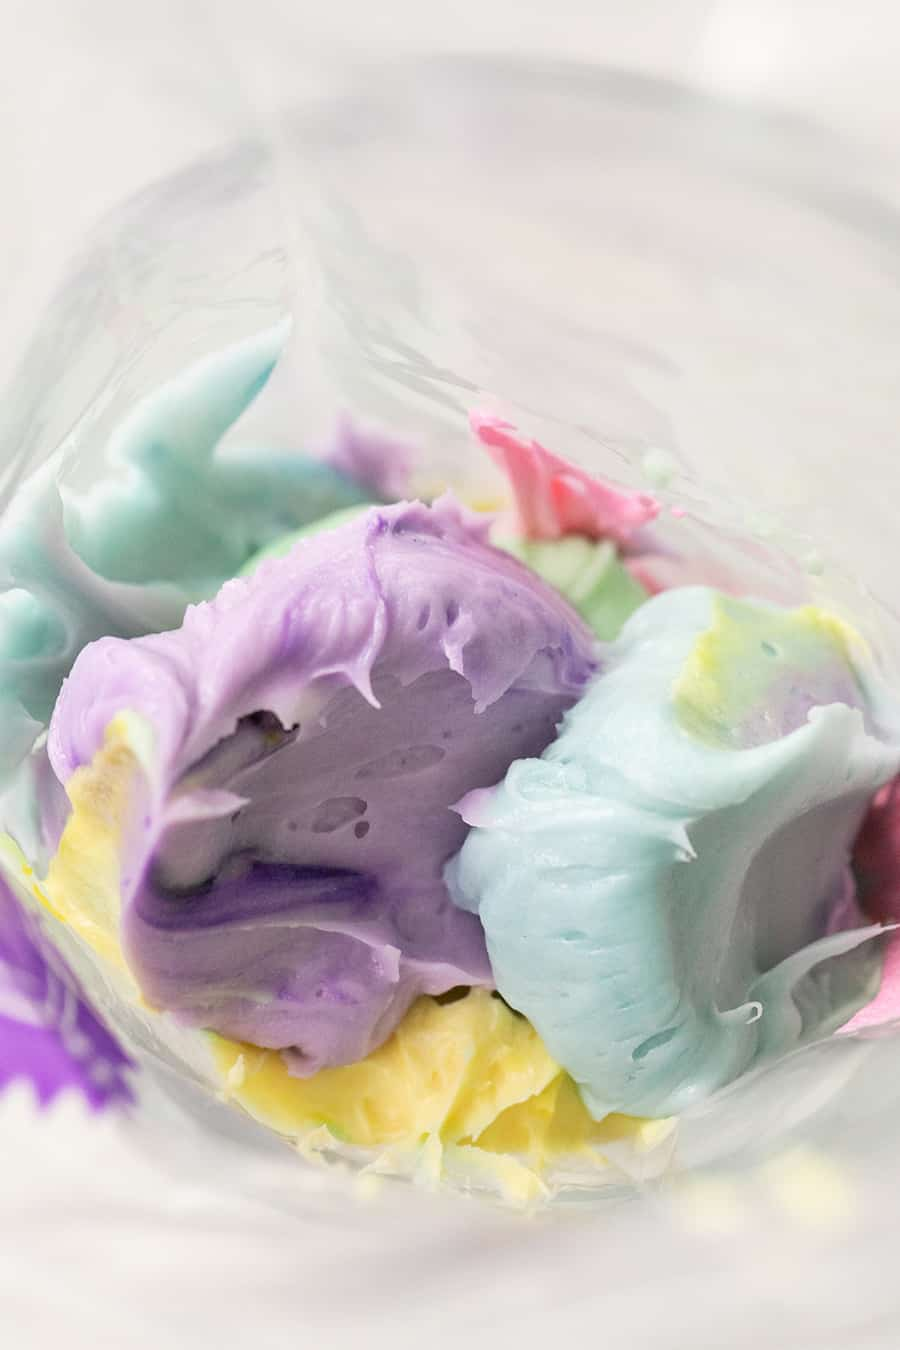 Rainbow frosting in a piping bag for colorful frosting